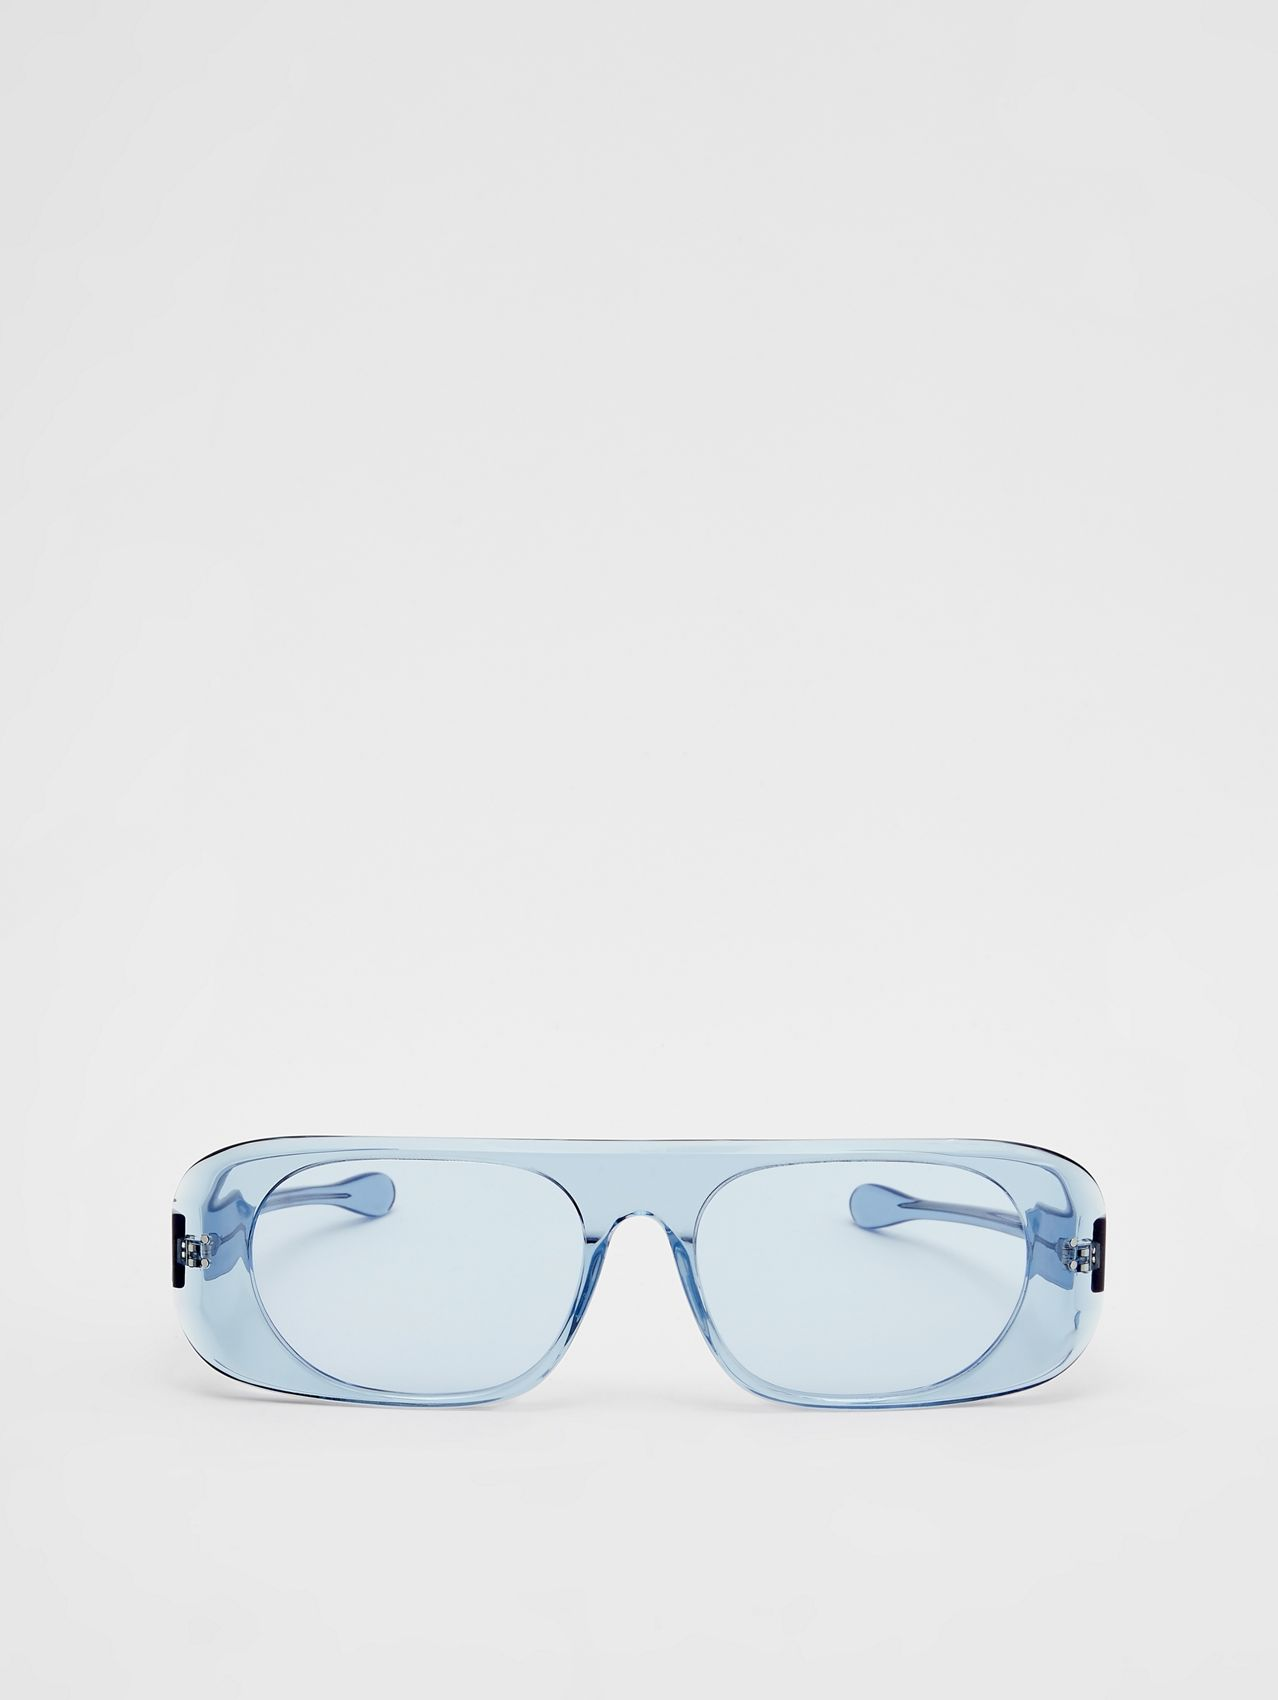 Blake Sunglasses in Transparent Blue